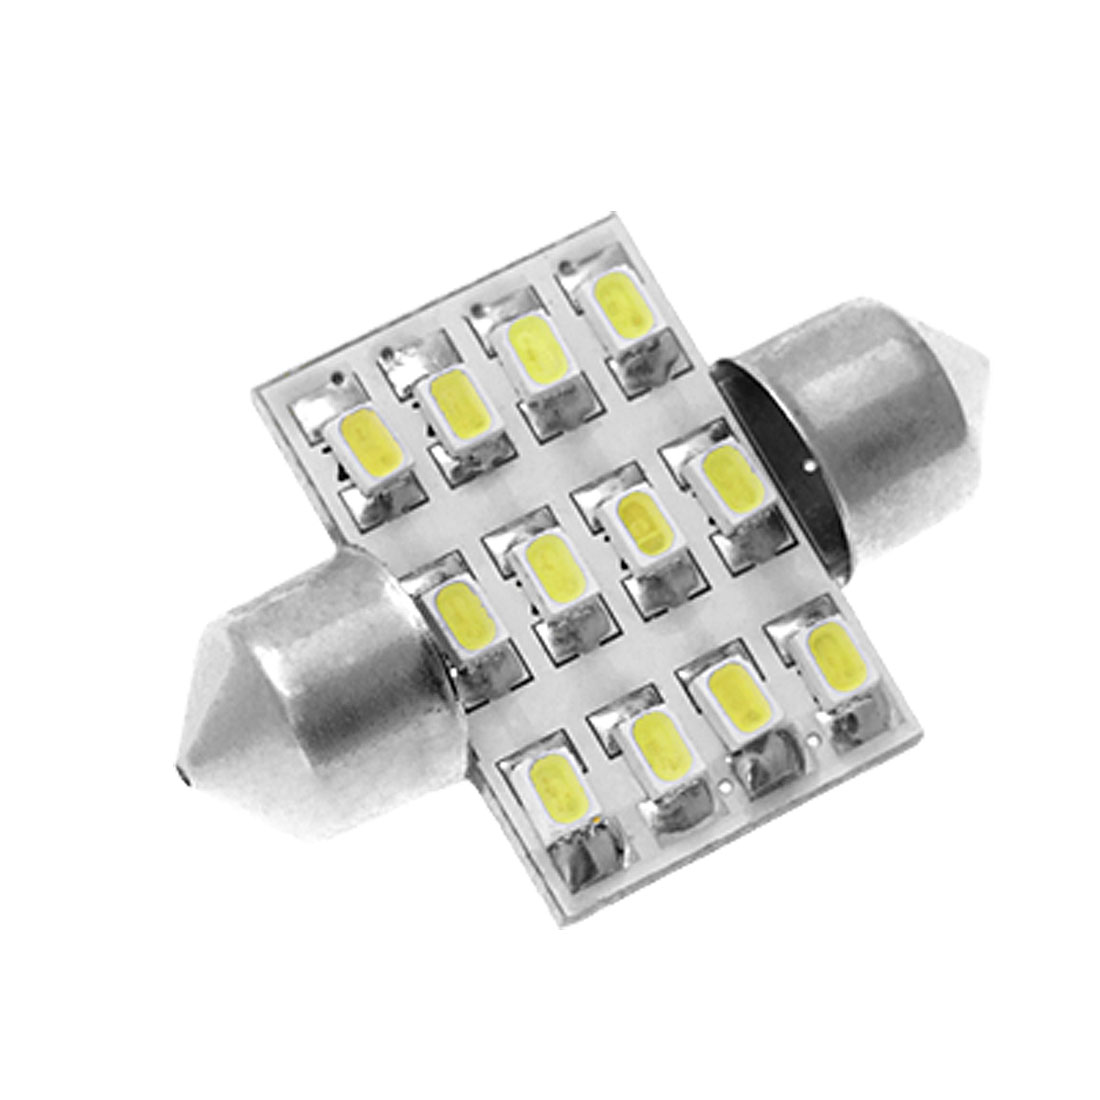 White 12 SMD LED Car Auto 31mm Festoon Dome Light Lamp Bulb DC 12V internal